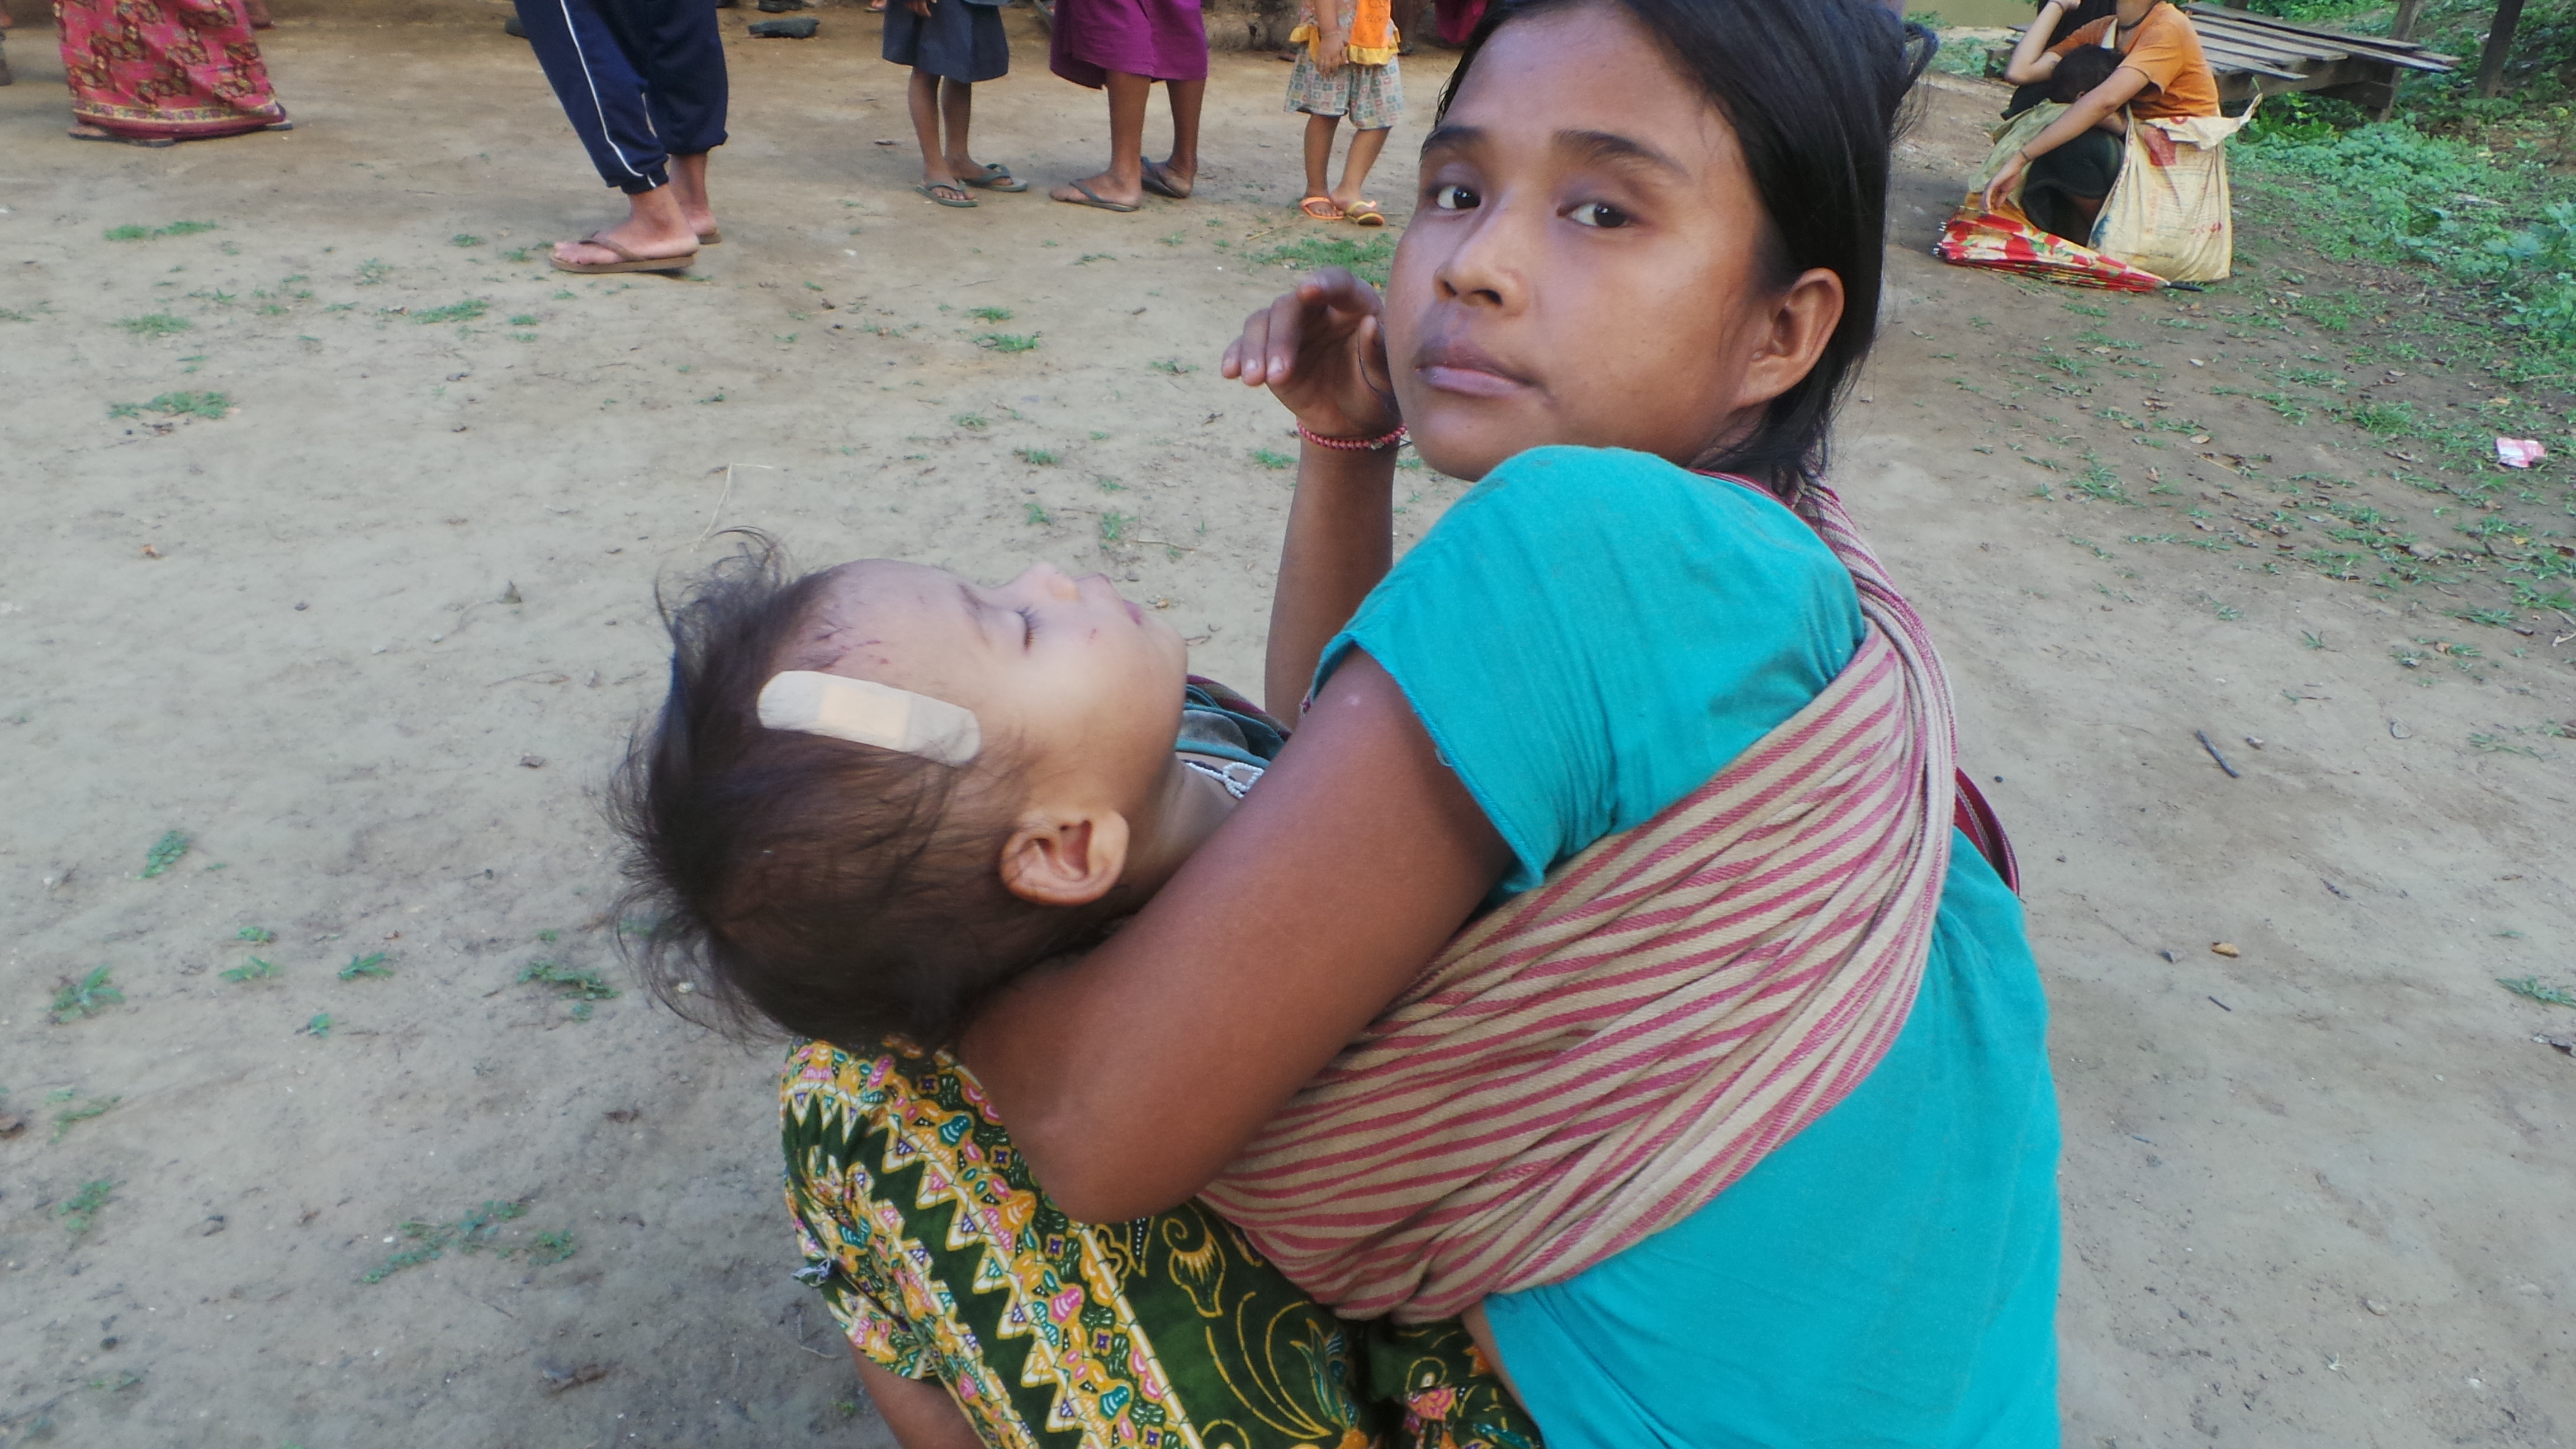 Photo of Burma Army, BGF and DKBA Human Rights Abuses Push Displaced Villagers To the Edge of Health Crisis